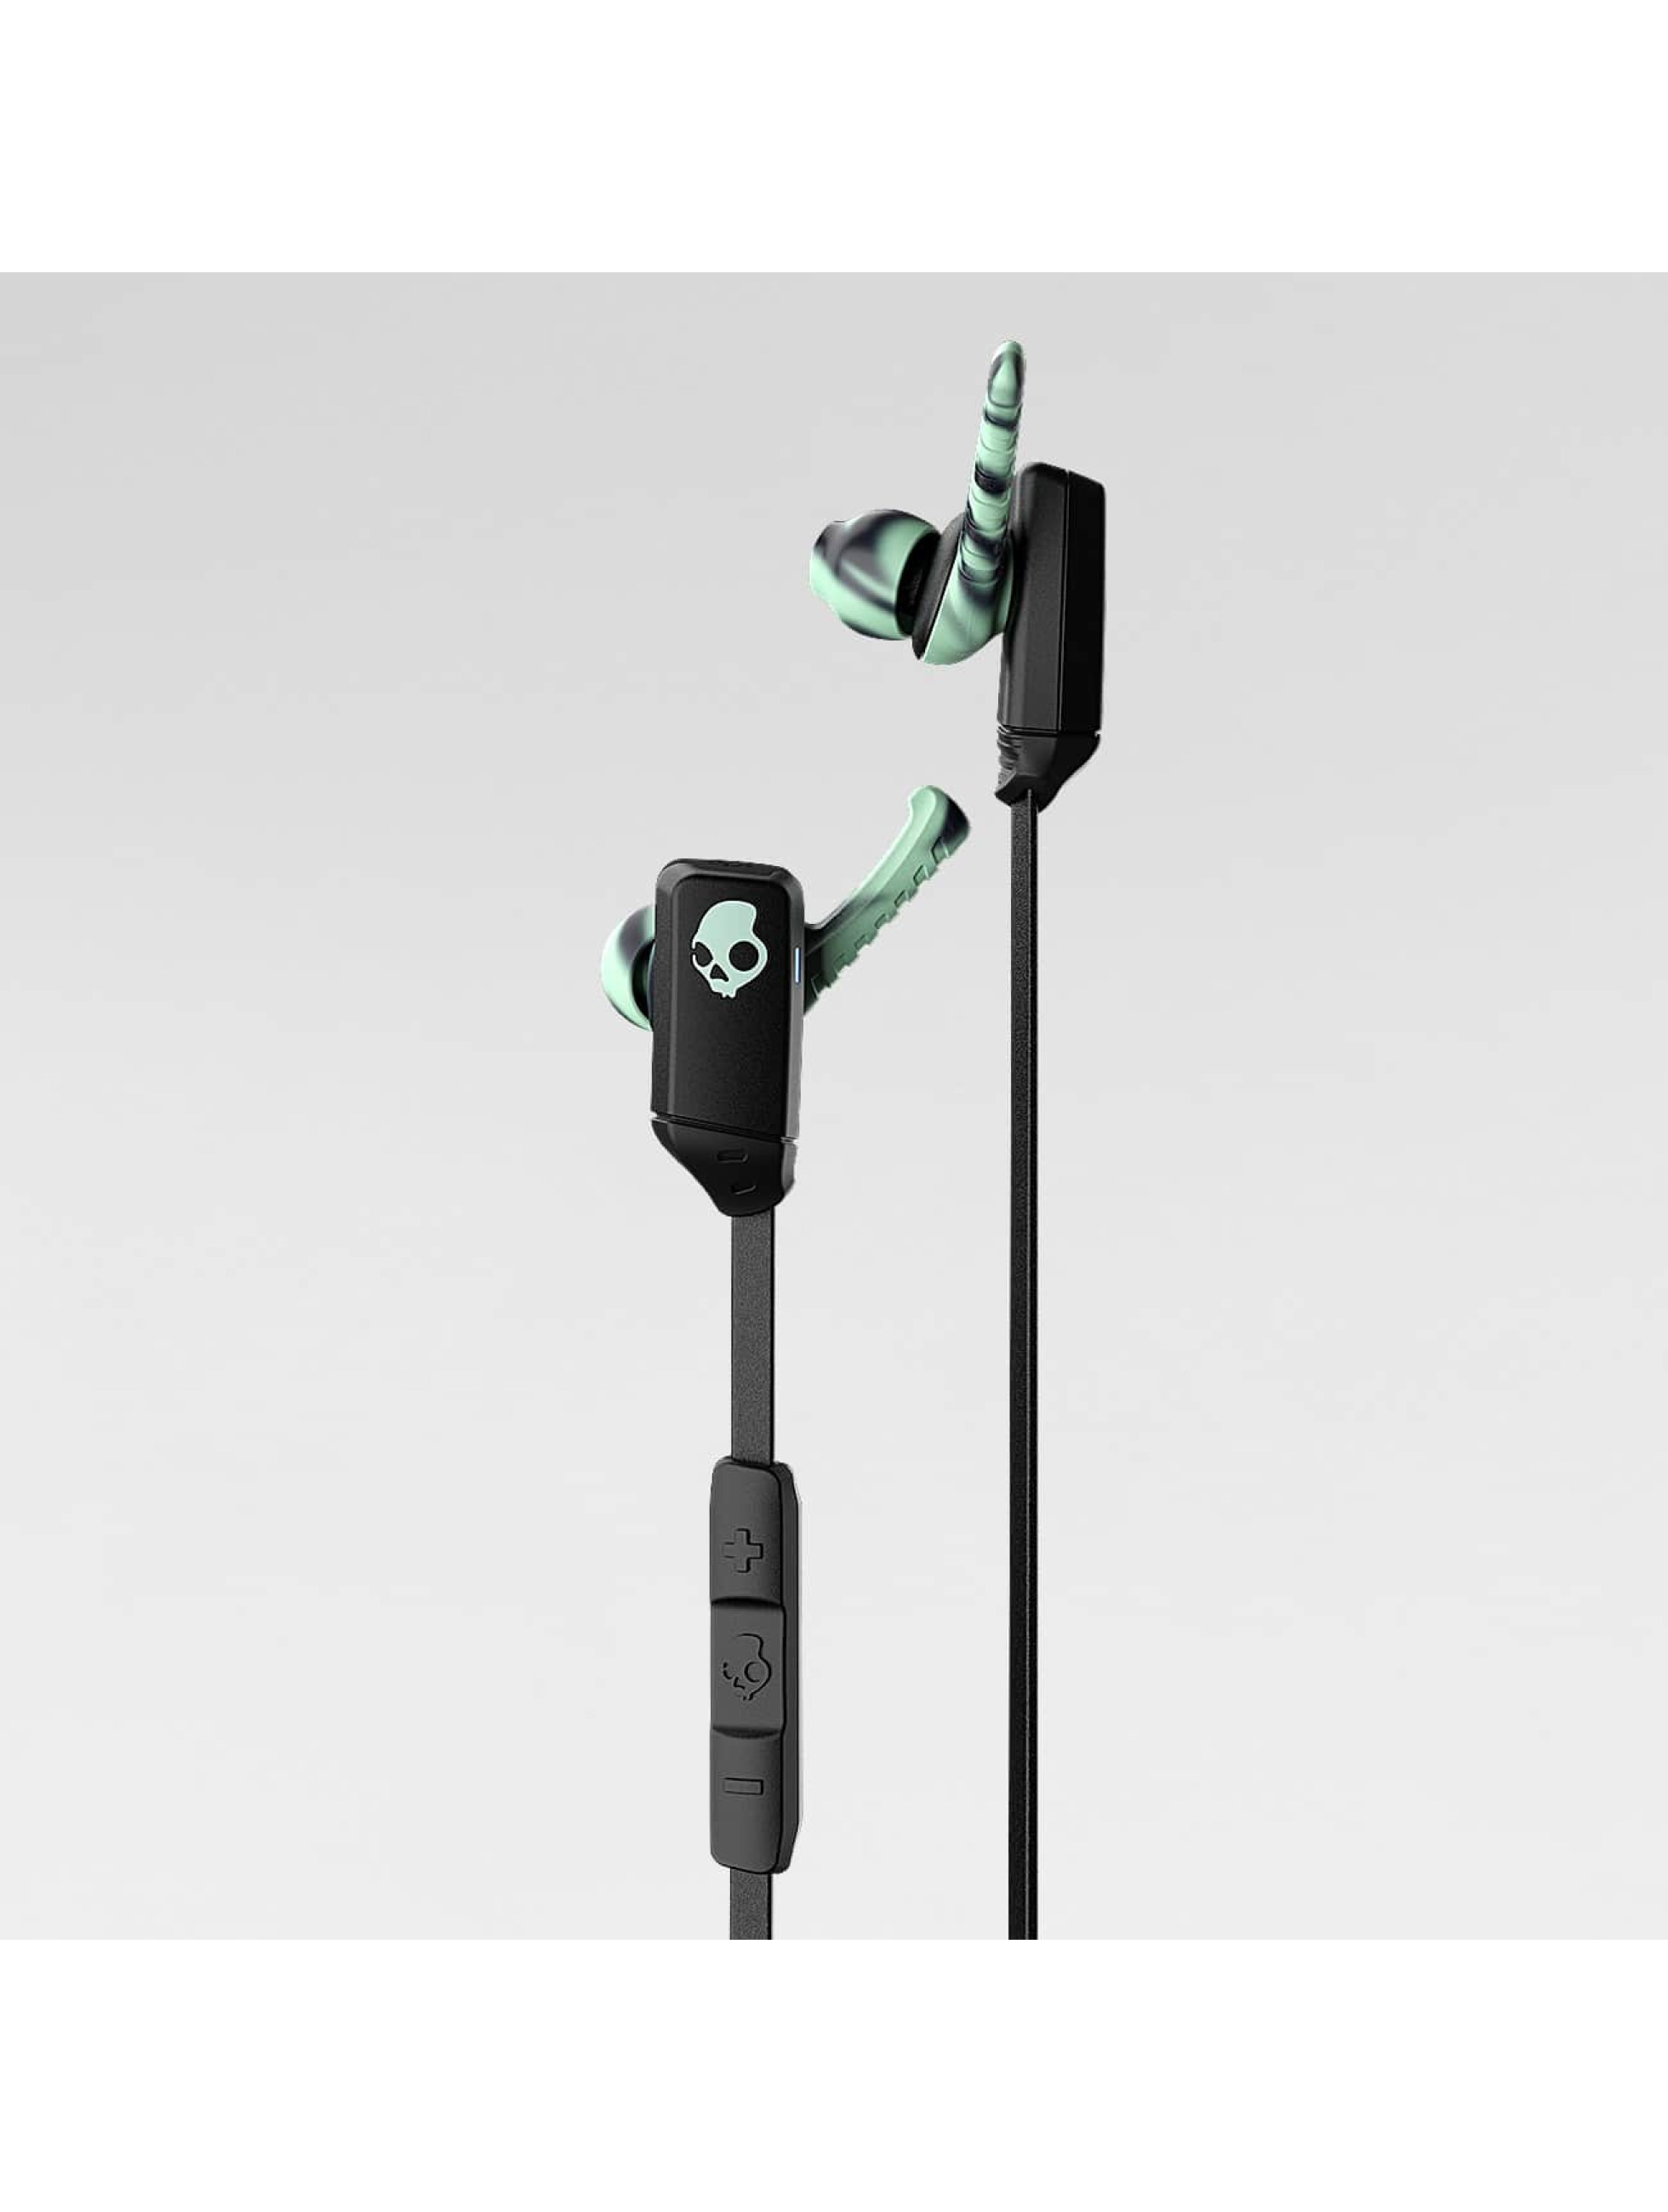 Skullcandy Sluchátka Xtfree Wireless èierna